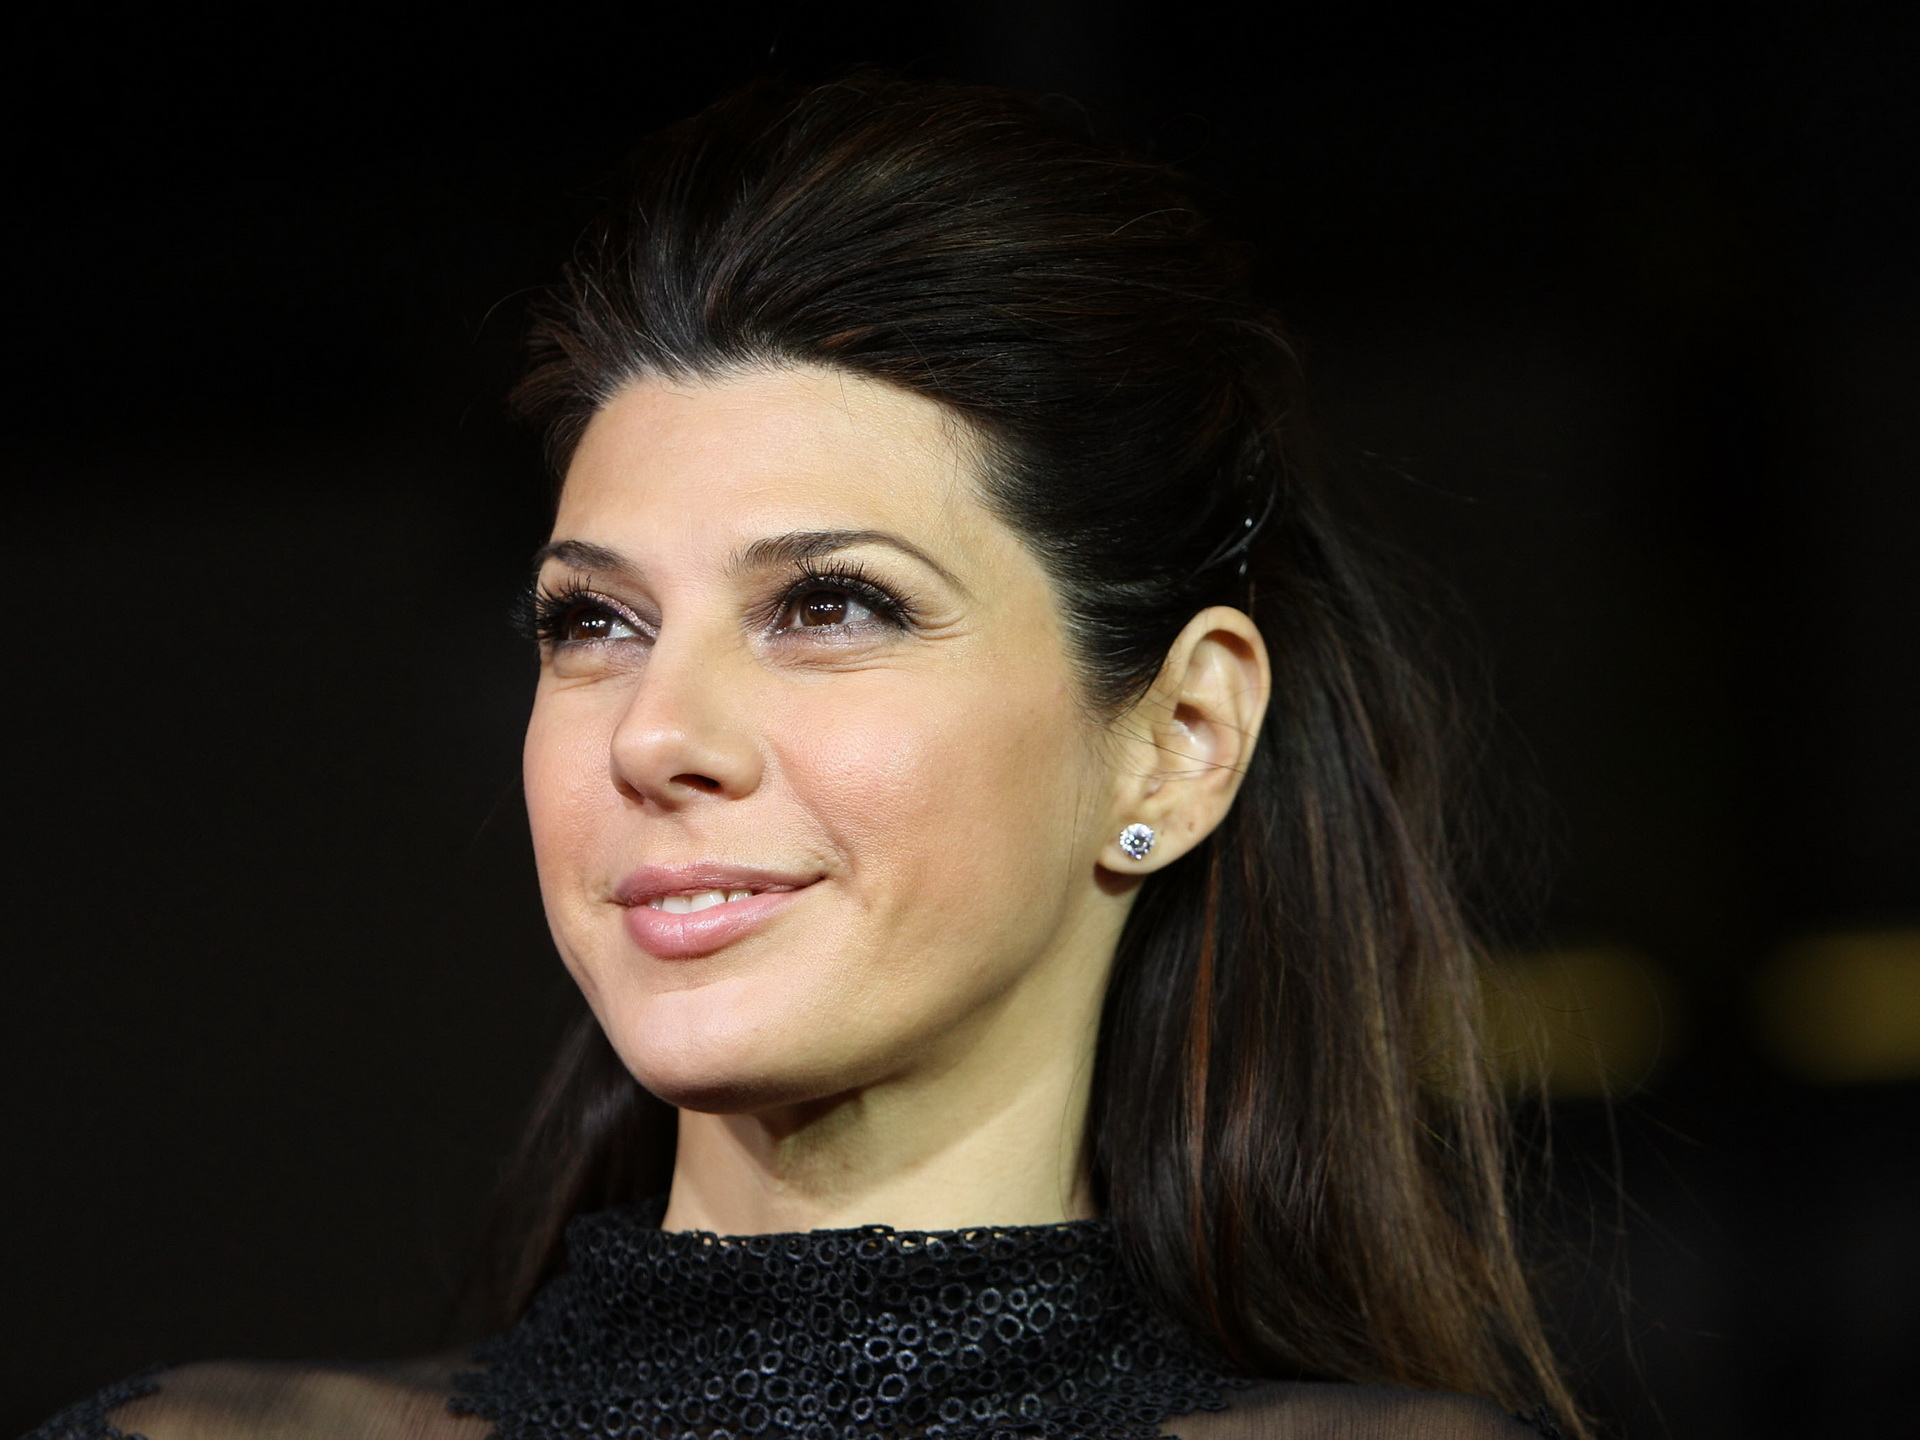 Marisa Tomei Celebrity Wallpaper 57400 1920x1440px 1920x1440